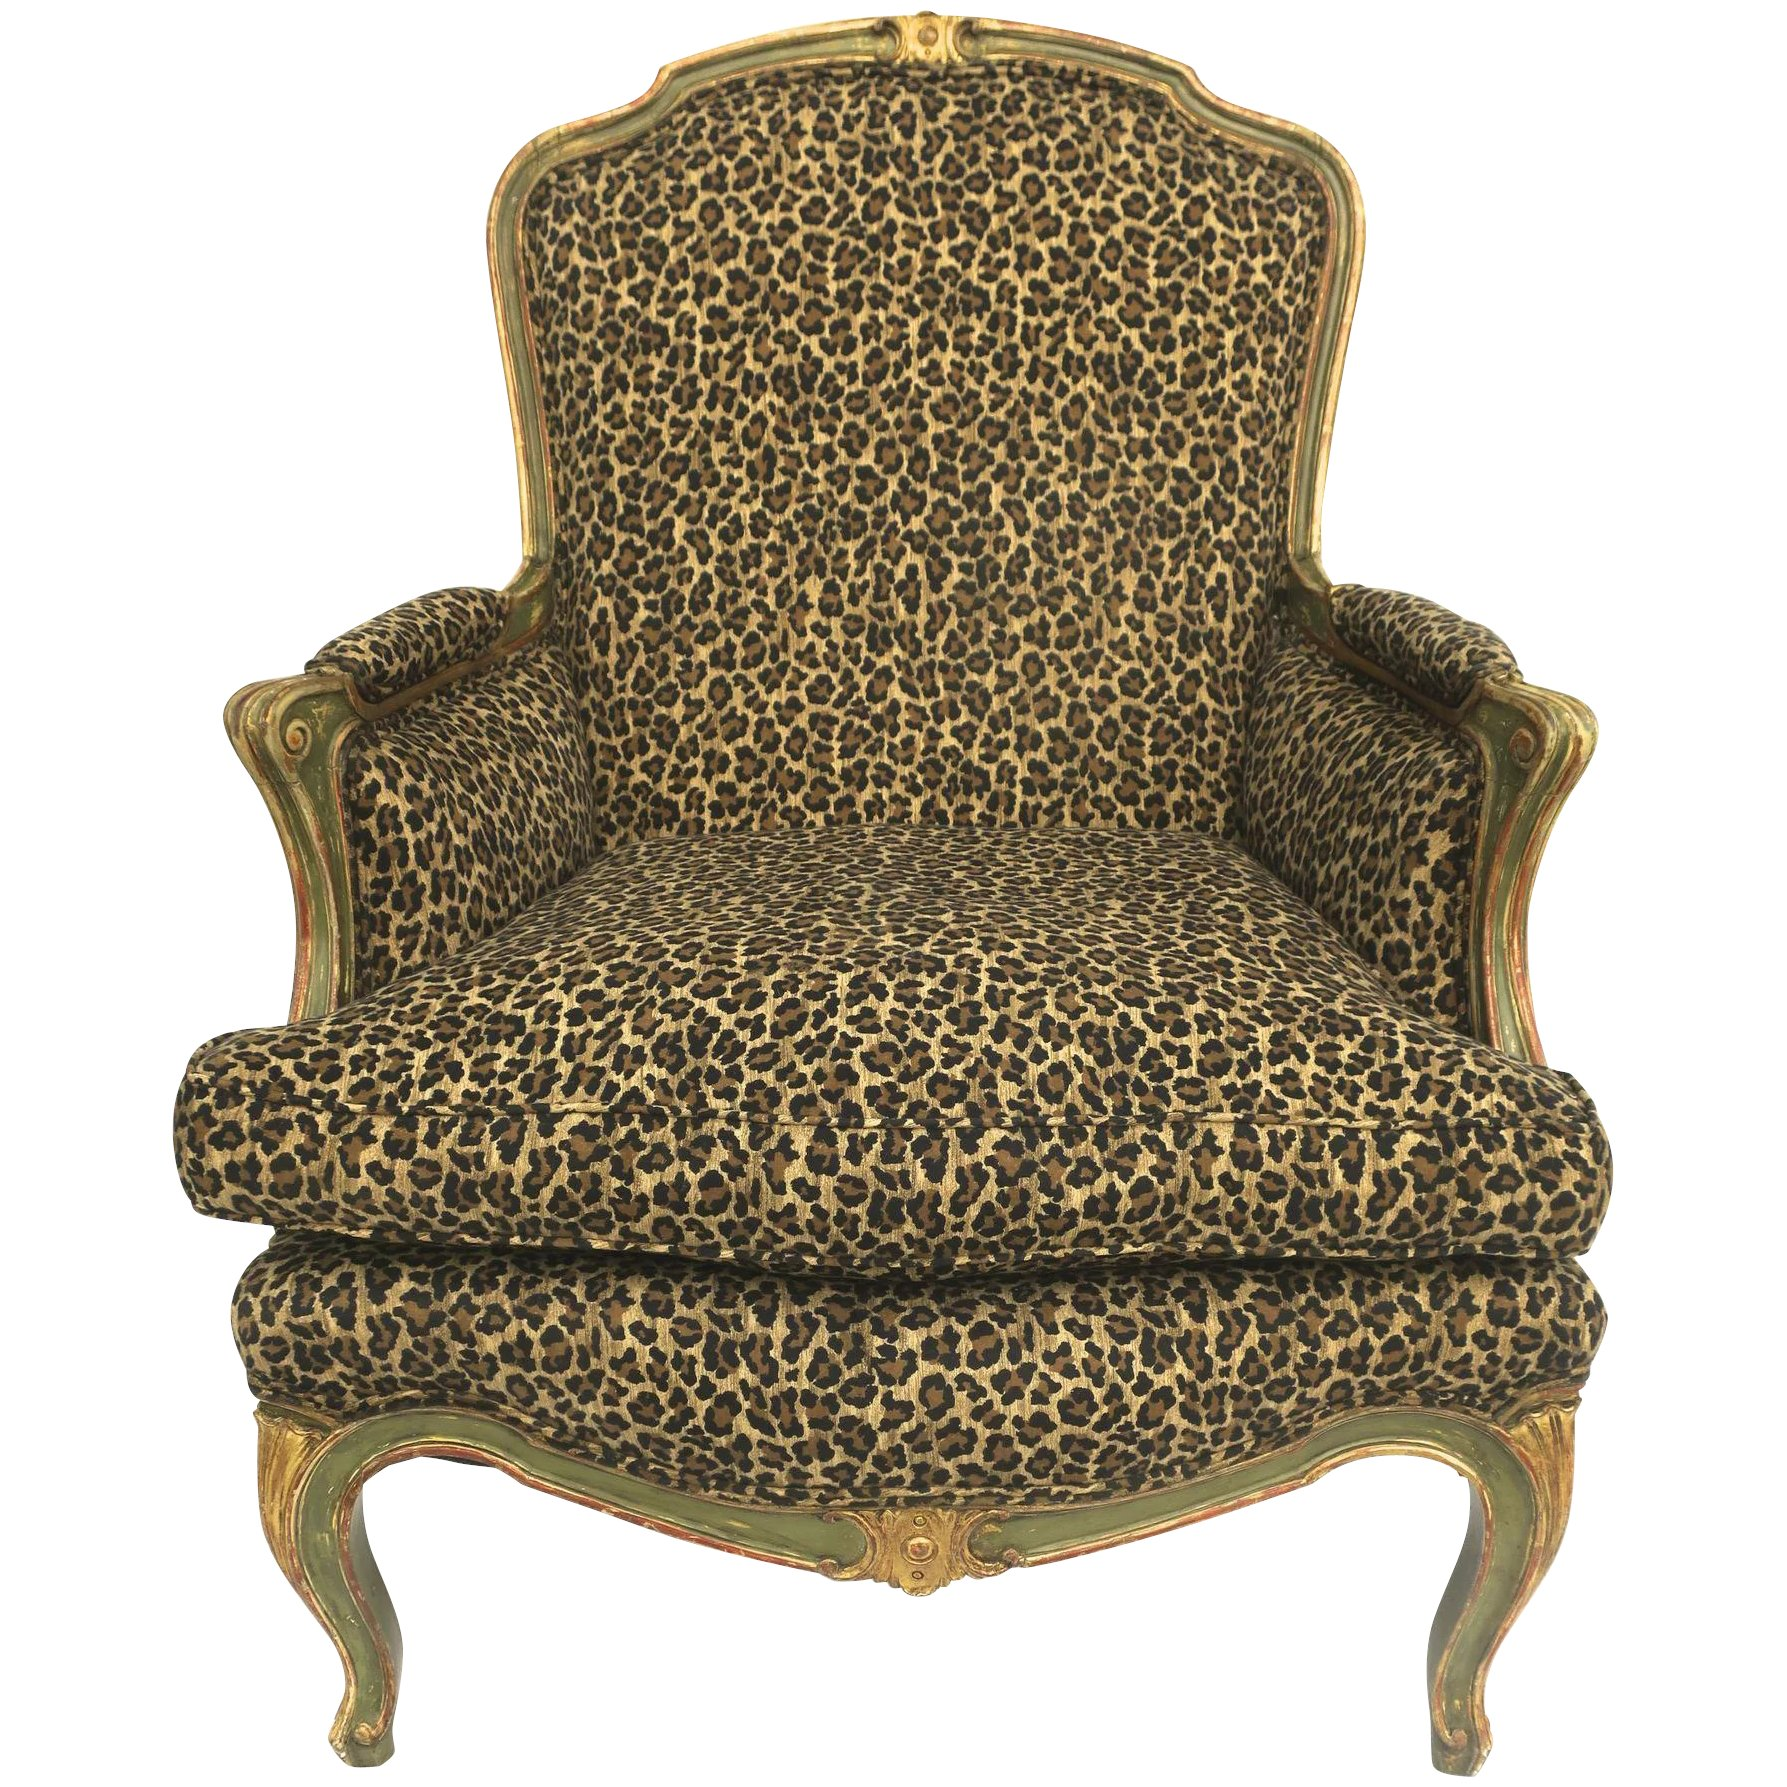 LOUIS XV ARM CHAIR FRENCH STYLE CHAIR VINTAGE FURNITURE LEOPARD BLACK WOOD